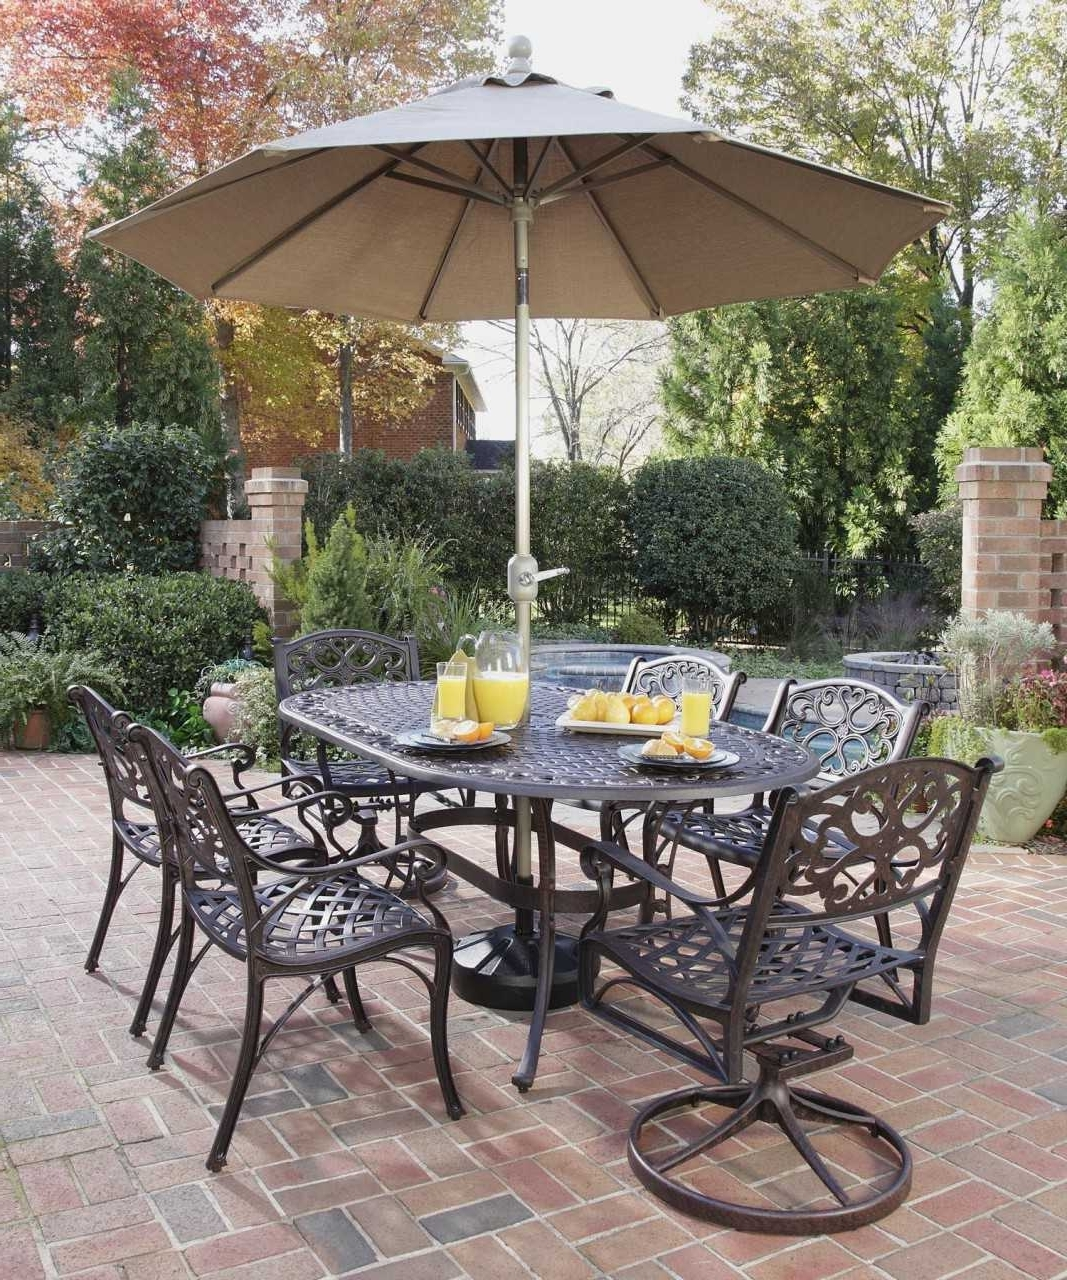 Popular Patio Table Sets With Umbrellas In Fascinating Patio Table Sets With Umbrella Trends Including Cheap (View 13 of 20)